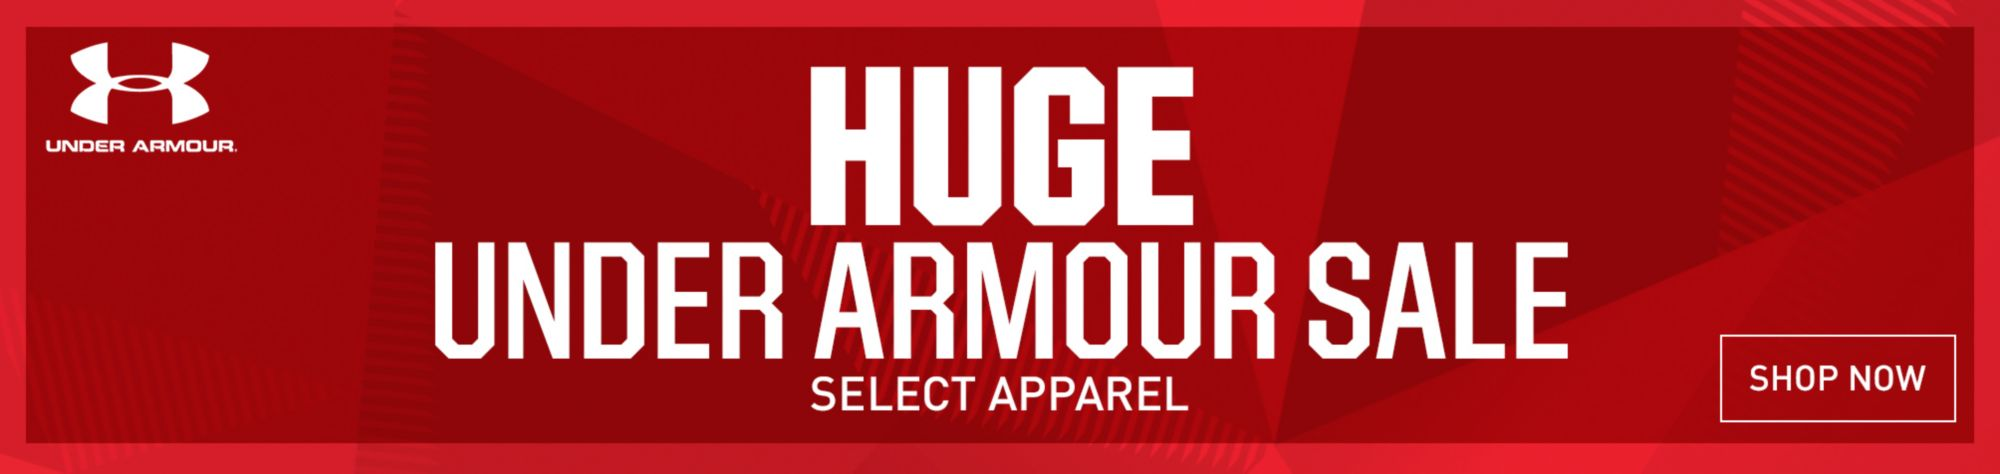 Shop 25% Off Under Armour Athletic Apparel